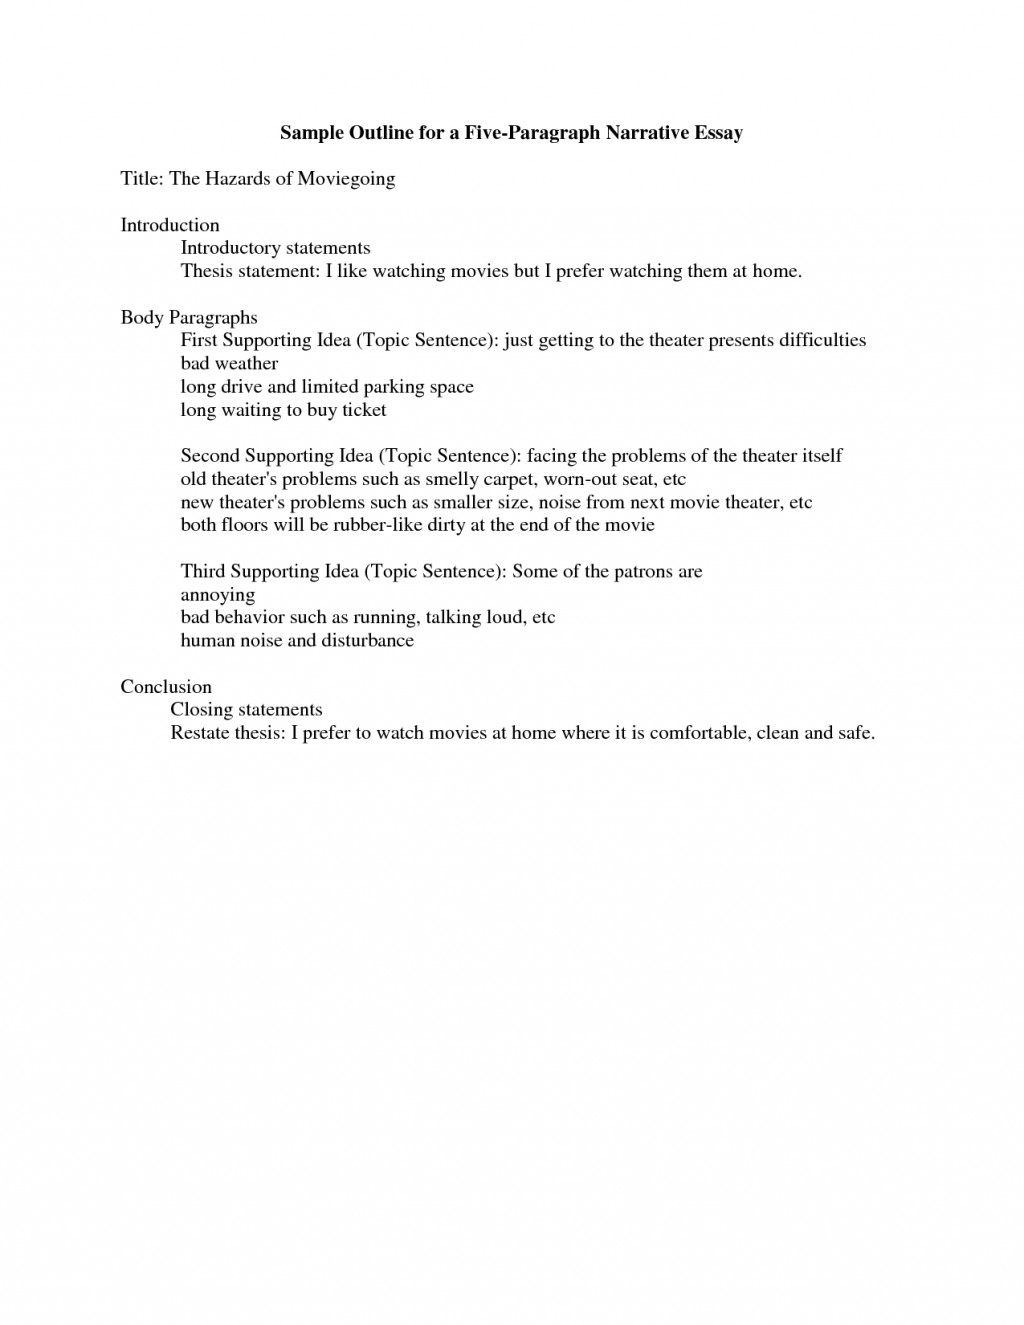 003 Narrative Essay Outline Impressive Doc Sample Large